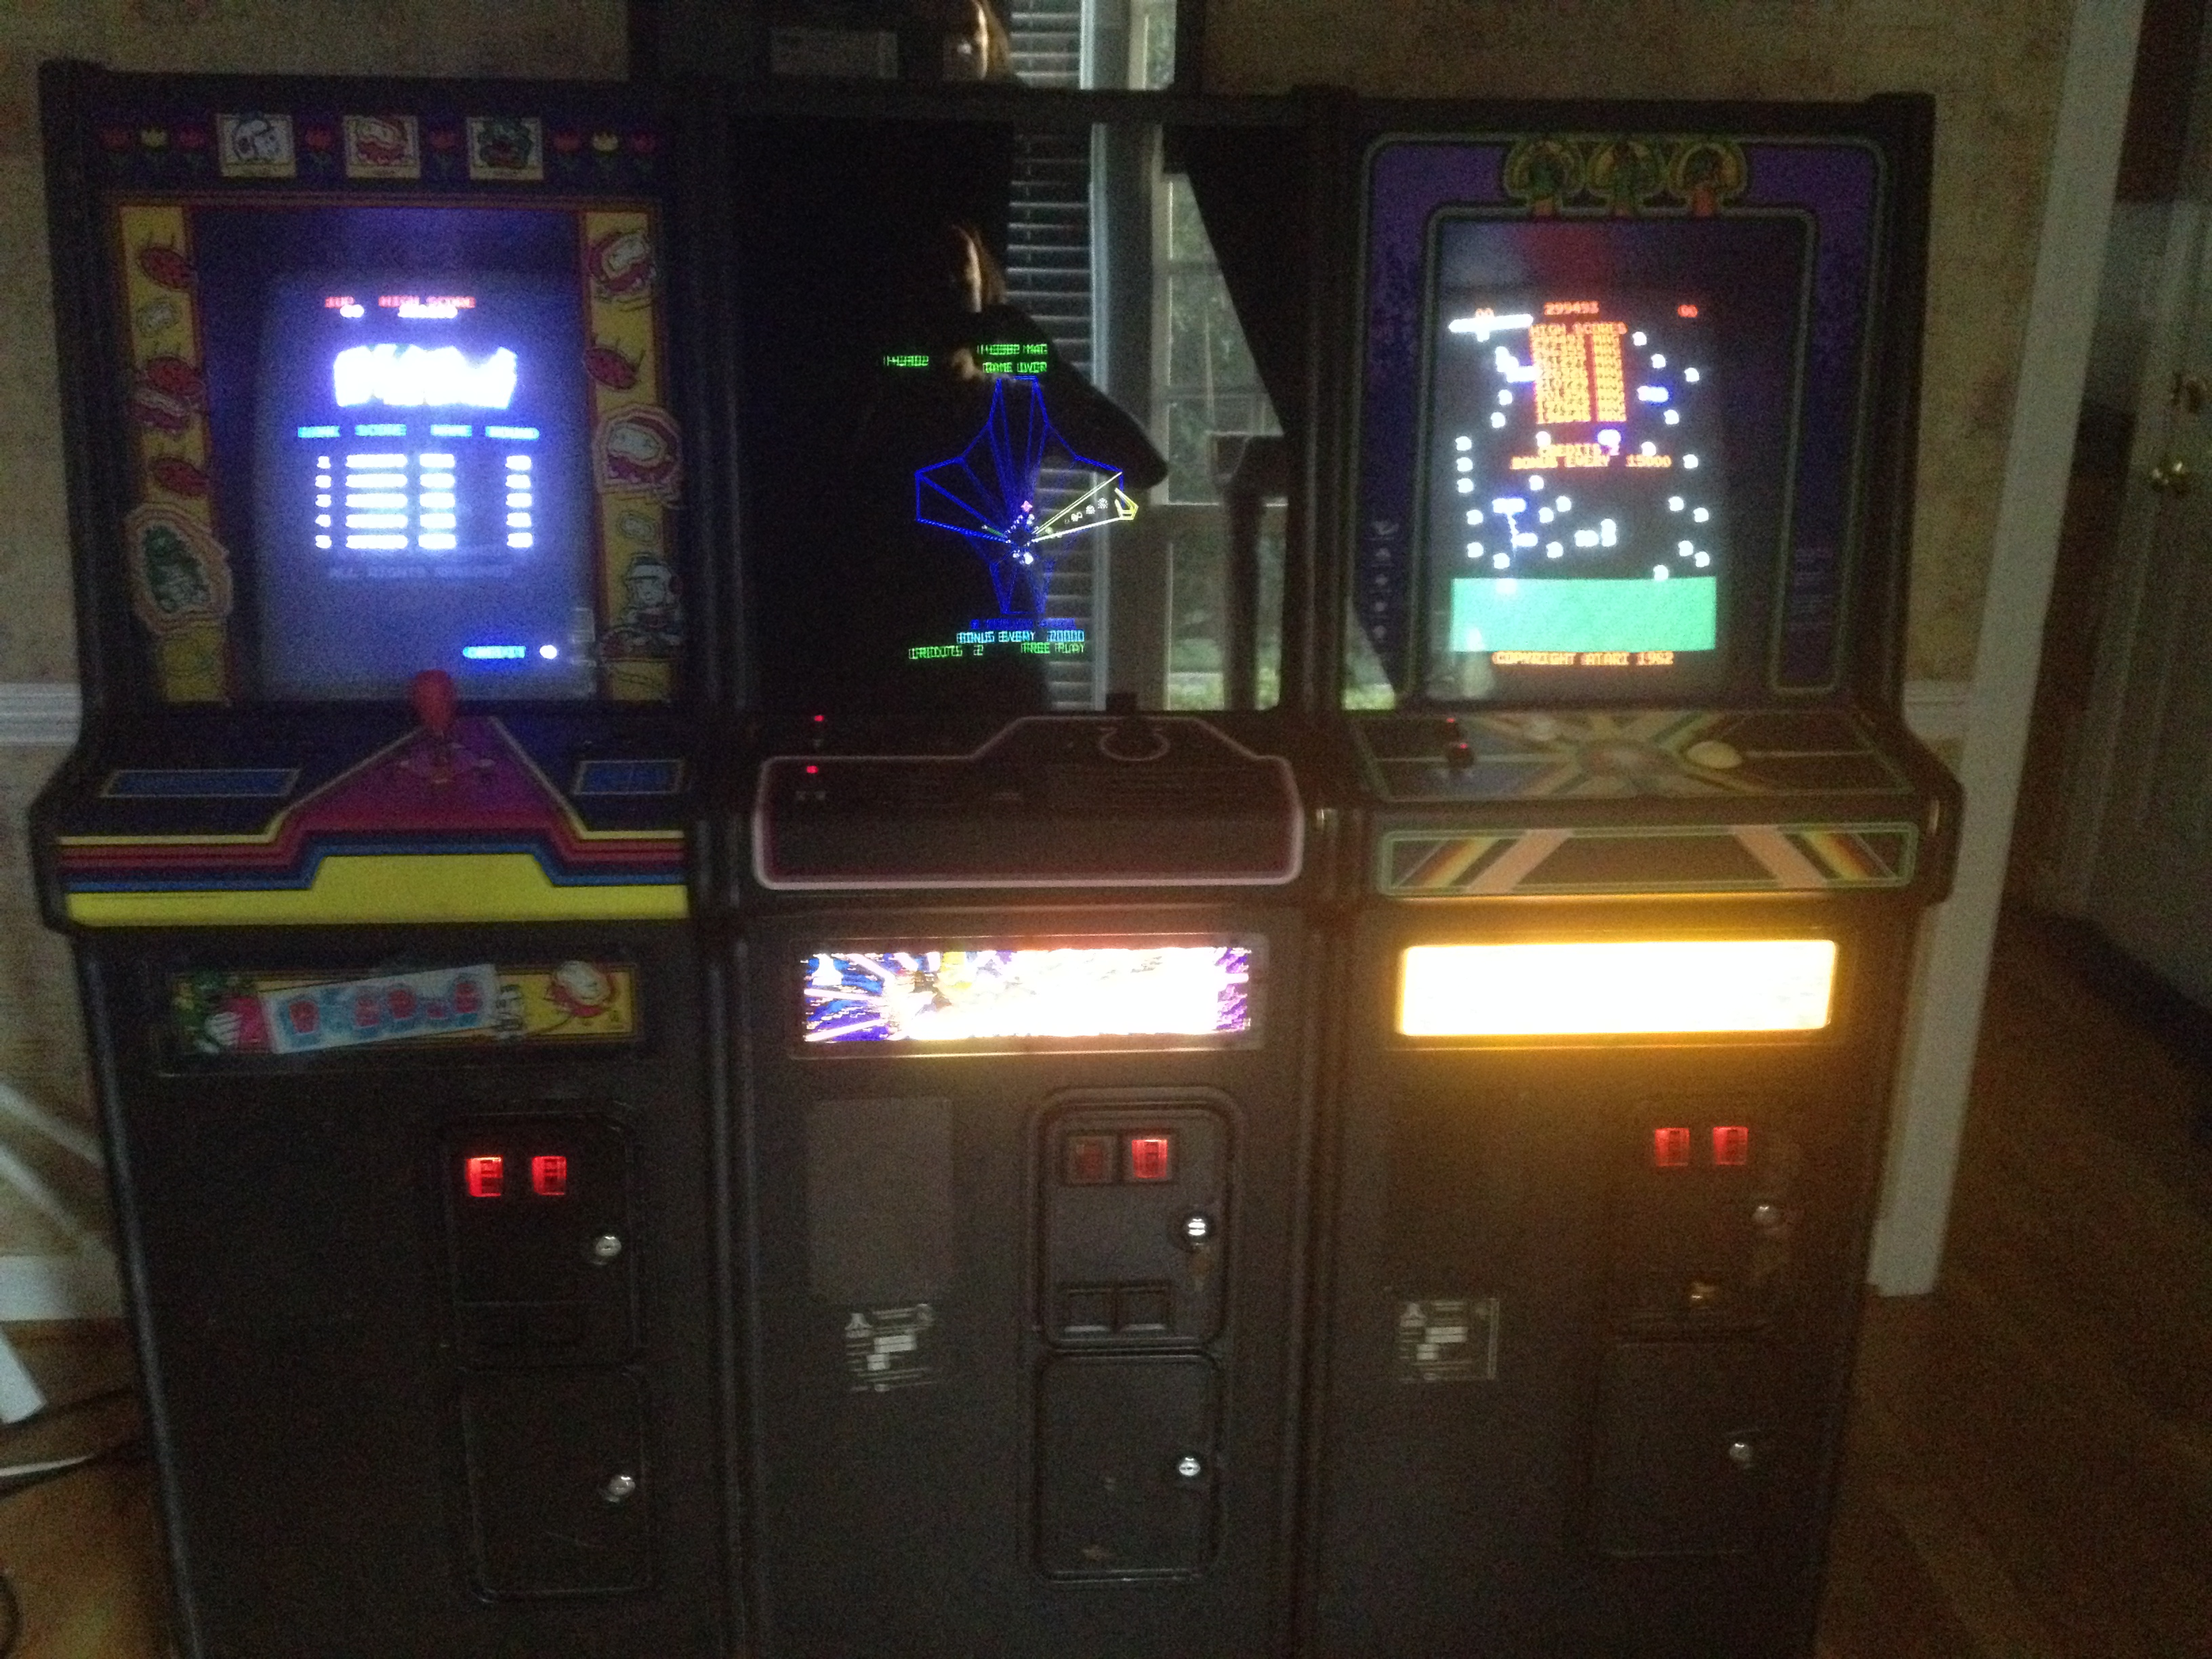 Magpie: Tempest (Arcade) 143,382 points on 2014-06-10 17:34:56